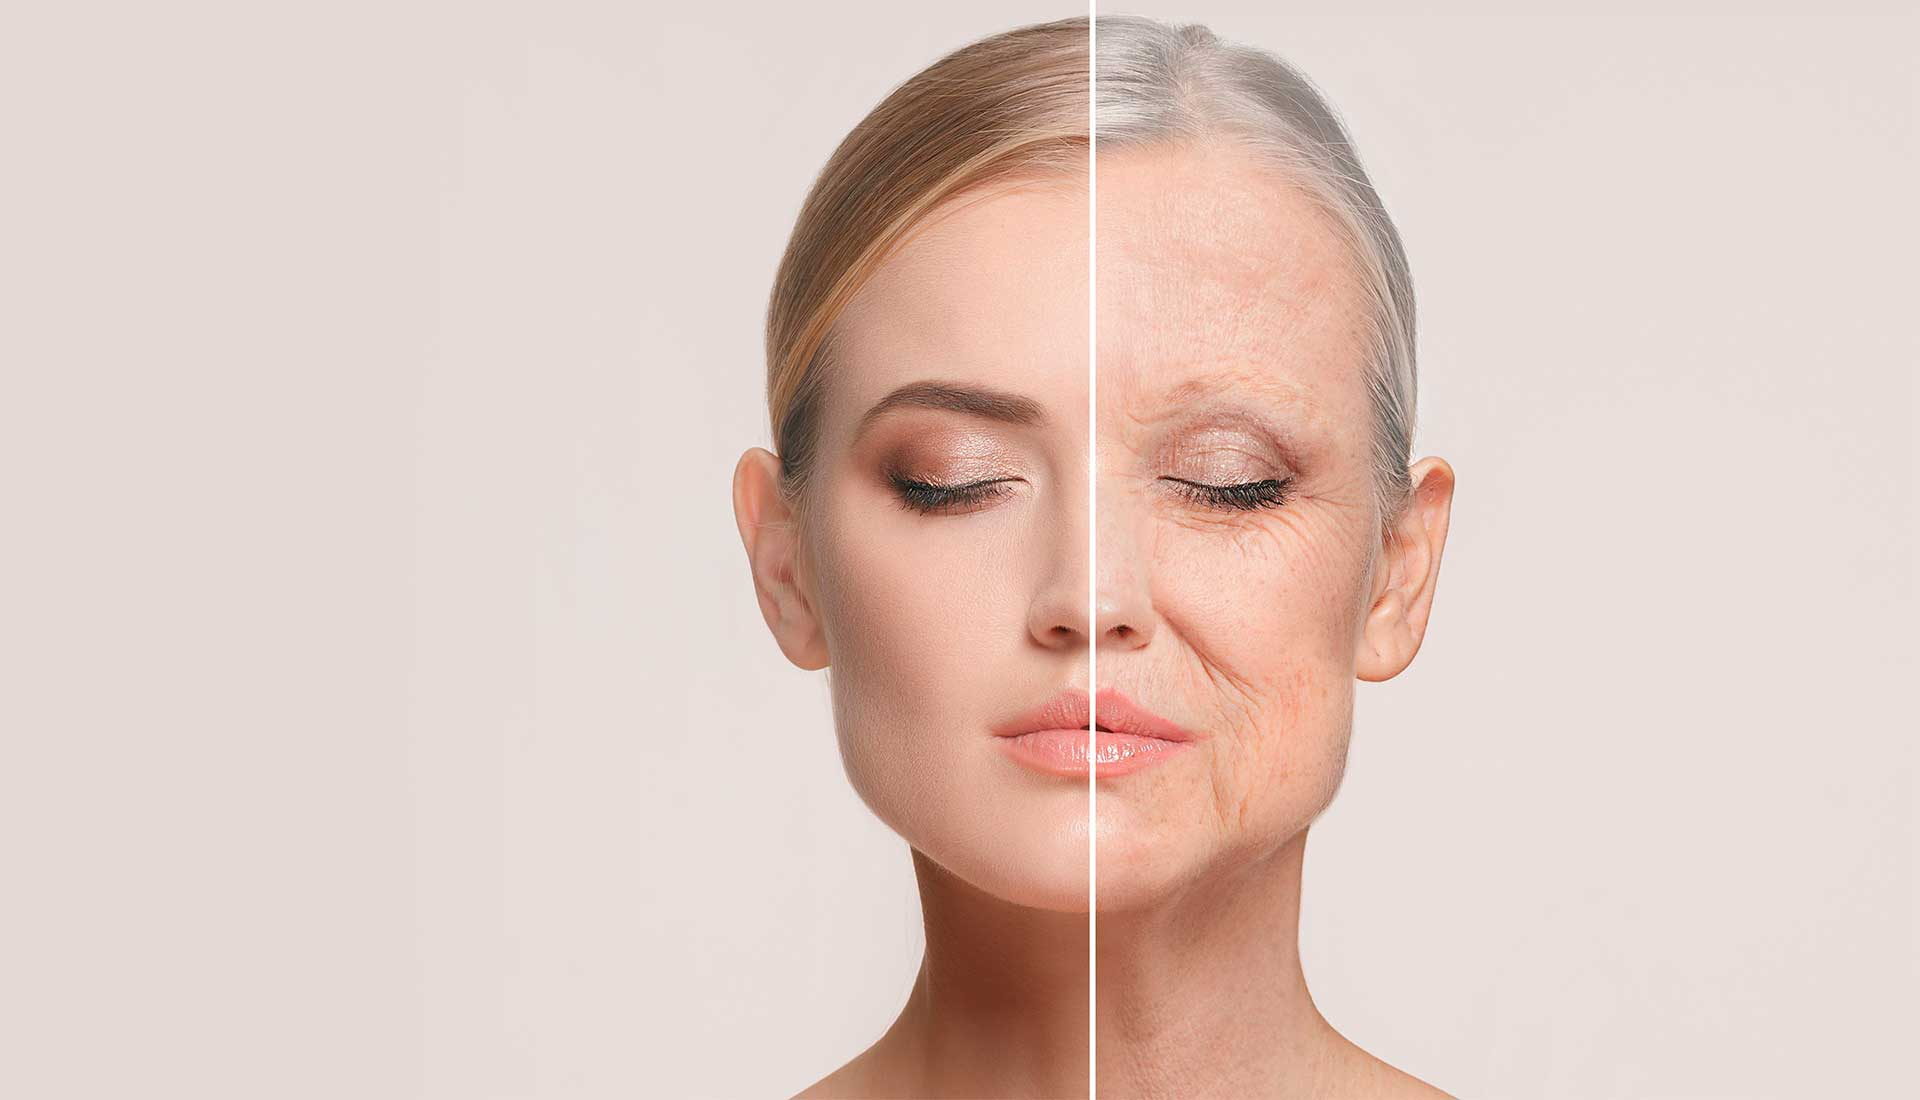 anti-aging facial treatments benefit women